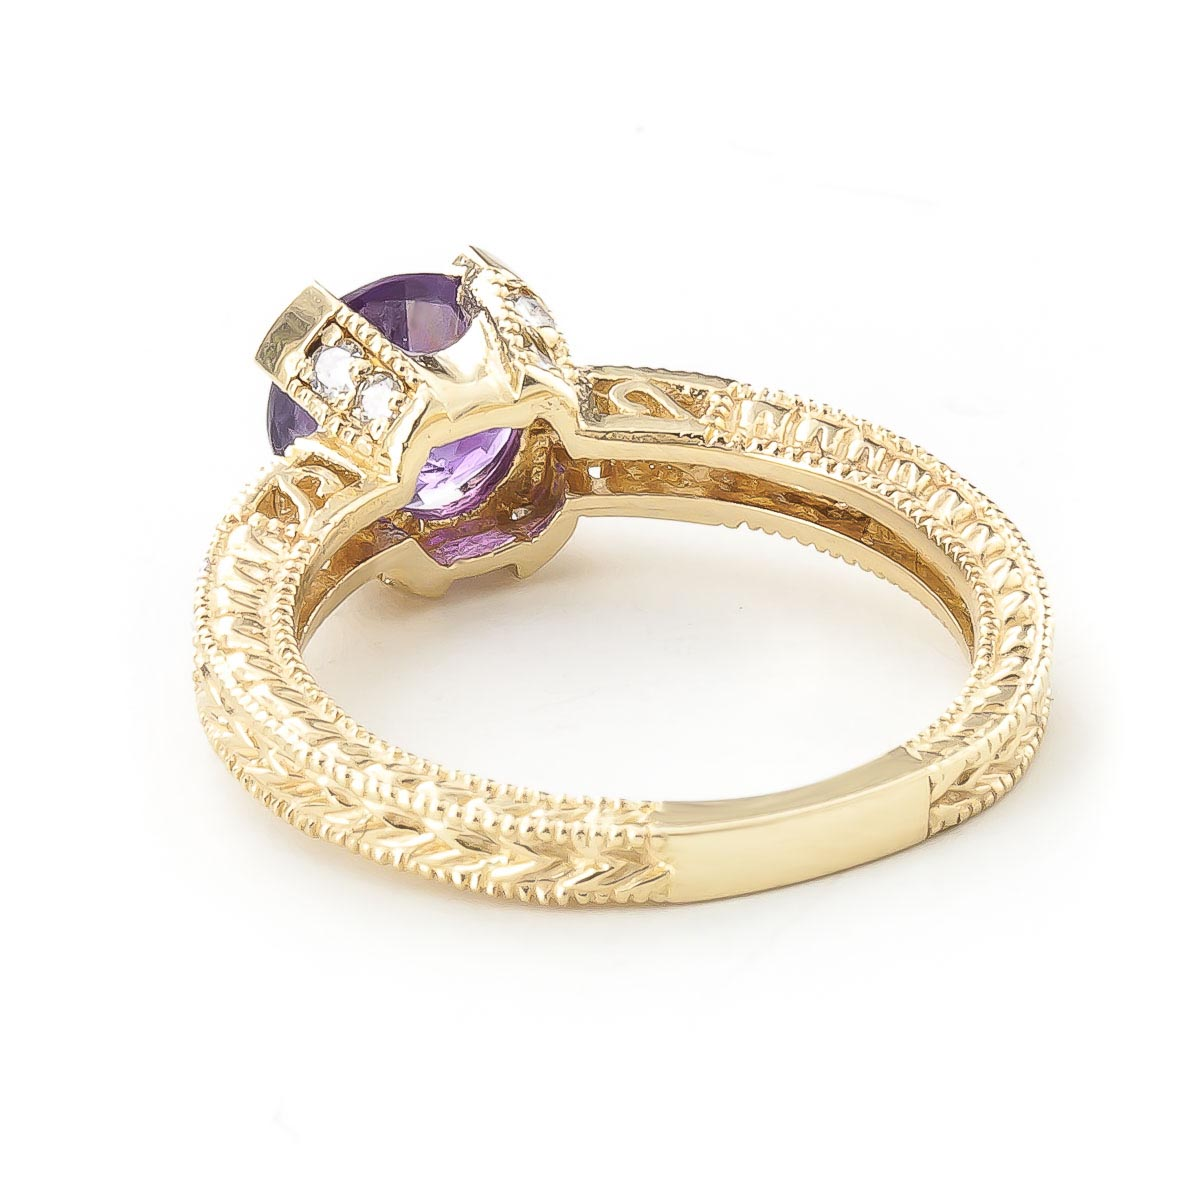 Amethyst and Diamond Renaissance Ring 1.5ct in 14K Gold